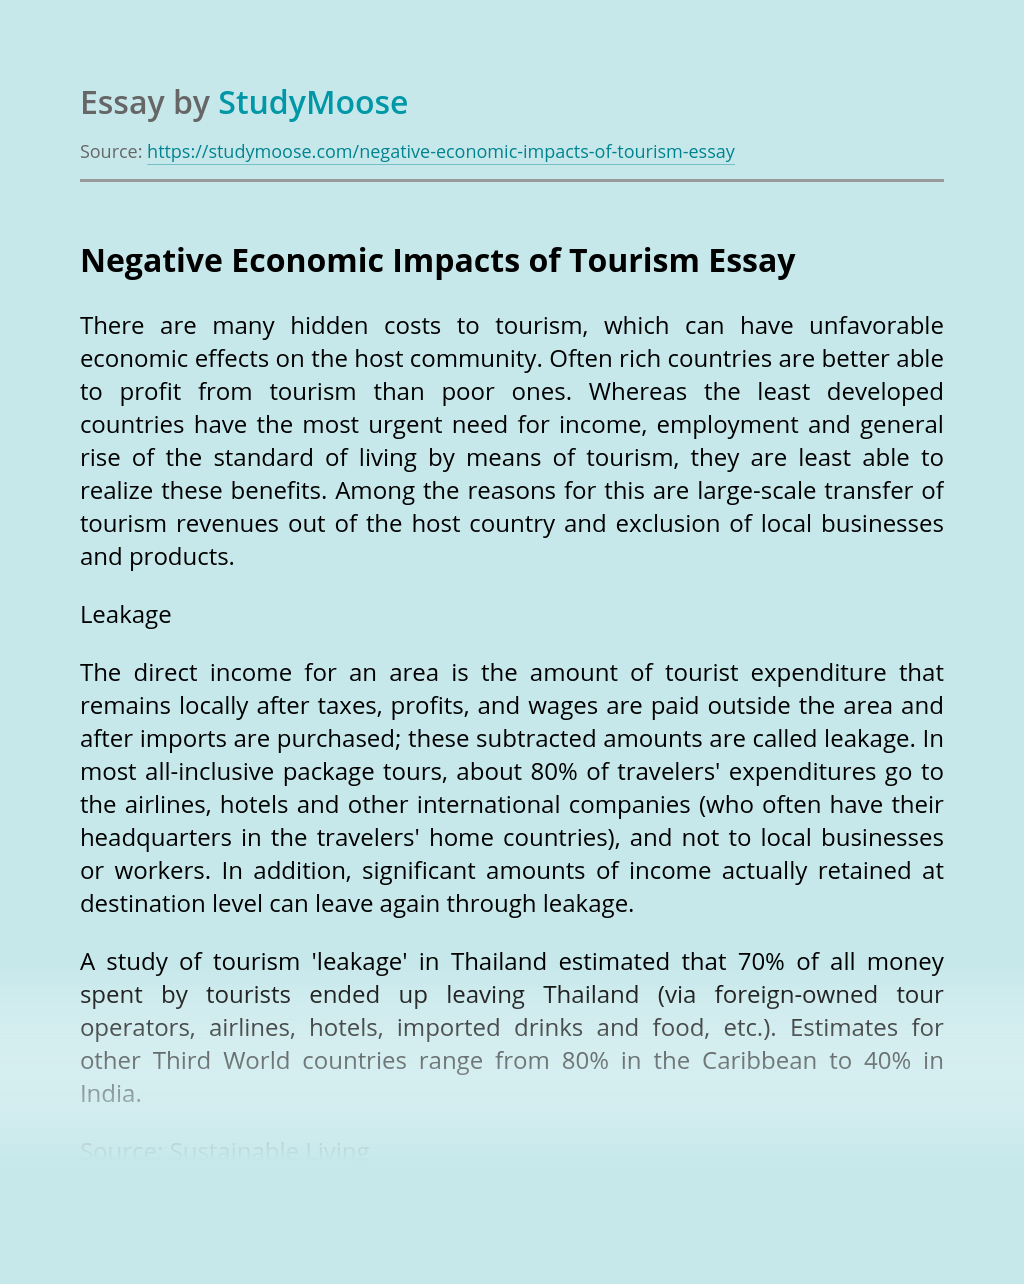 Negative Economic Impacts of Tourism